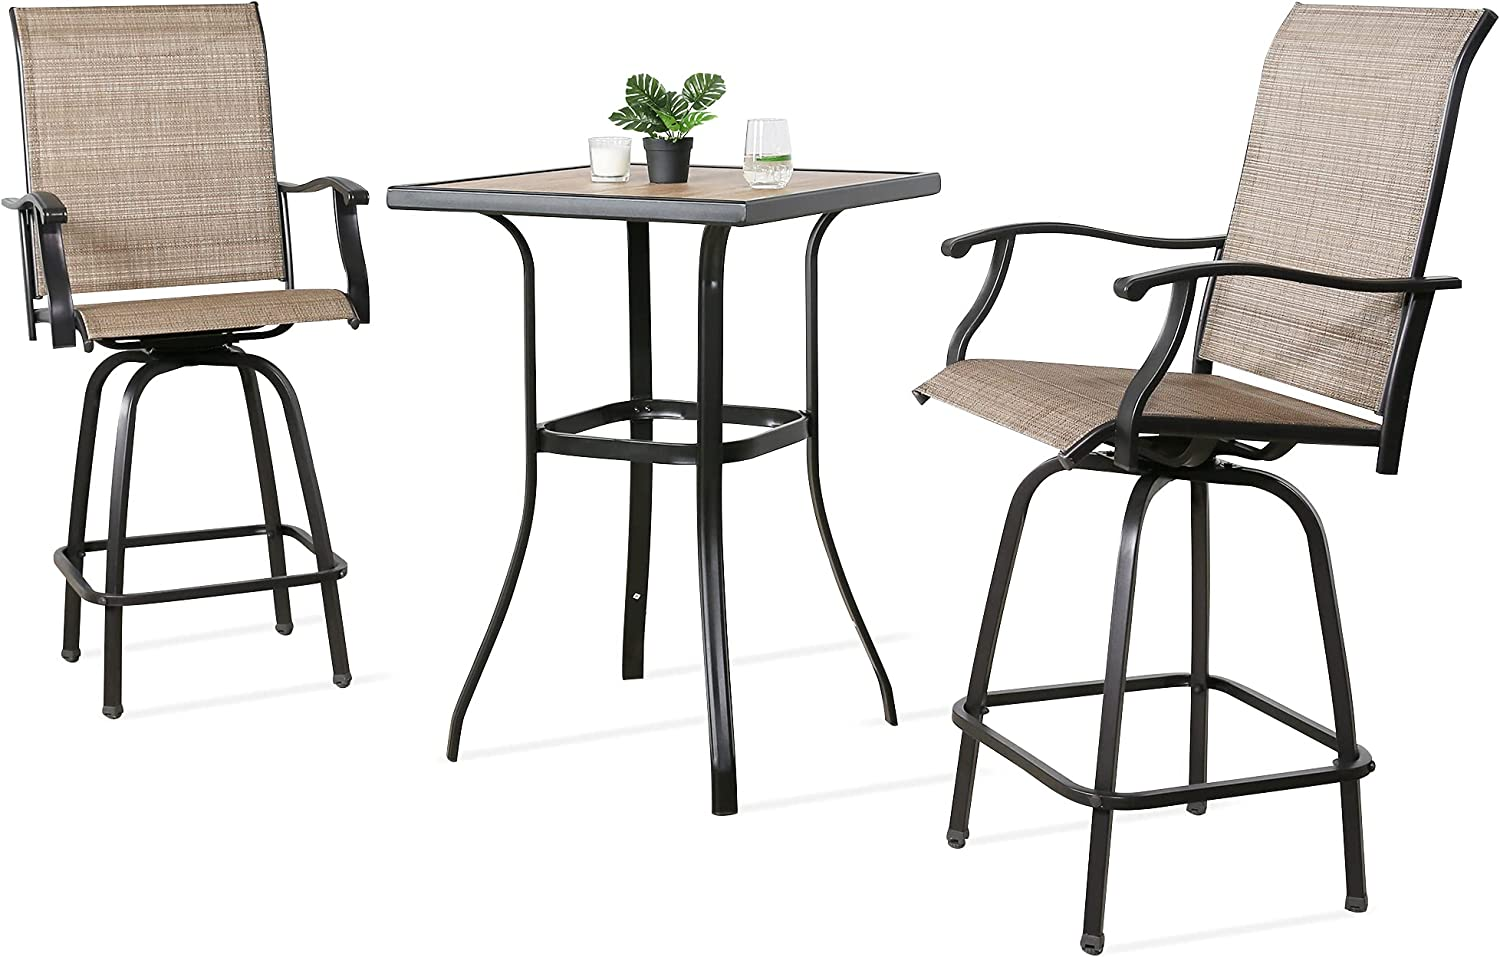 Ulax Furniture 3 Portland Mall Piece Free Shipping New Outdoor Set Bar Patio Bistro Co